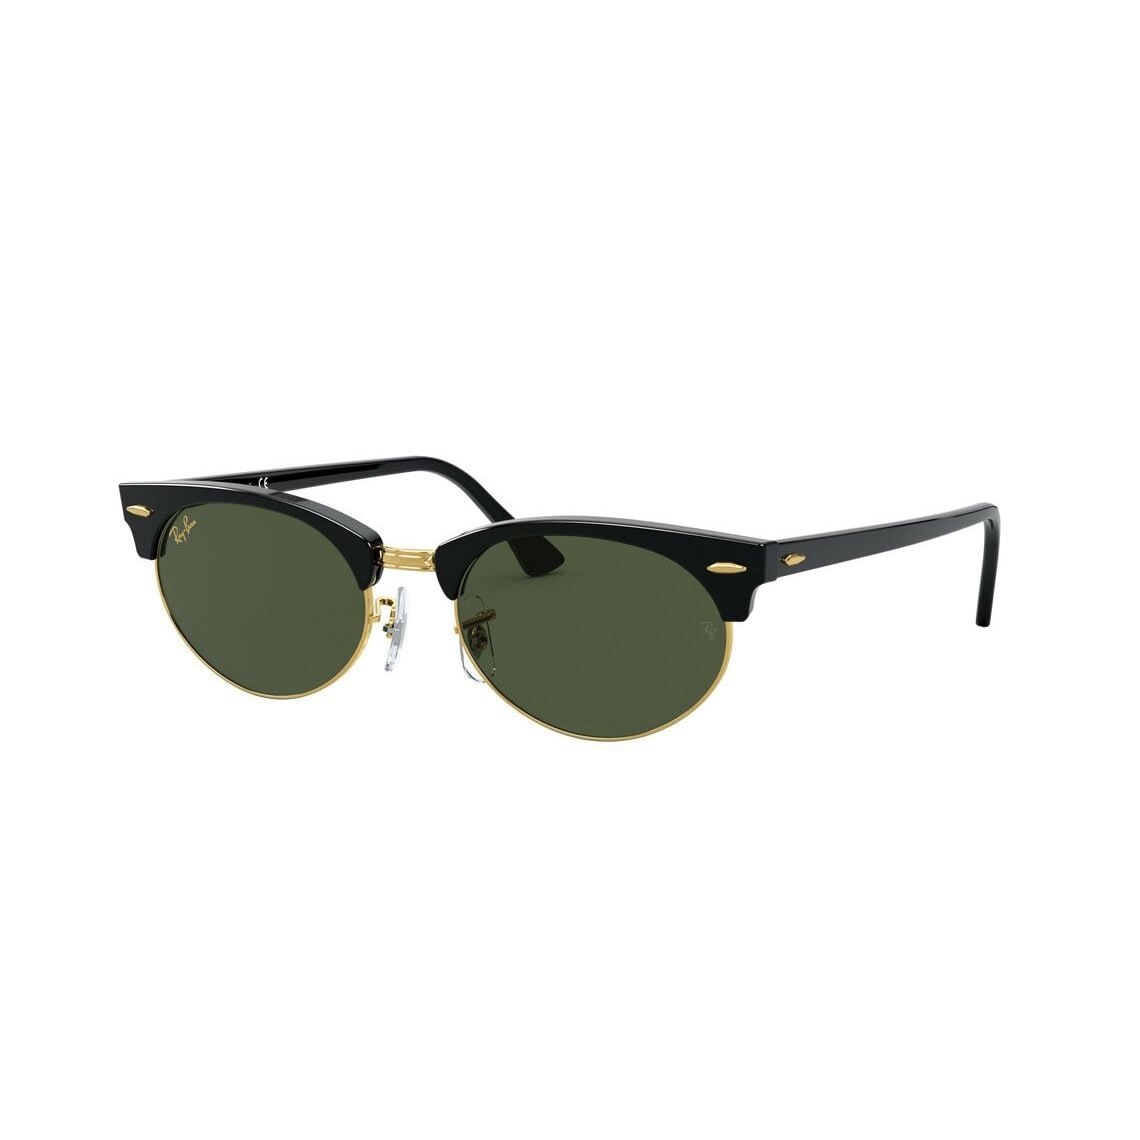 Ray-Ban Clubmaster Oval RB3946 130331 52